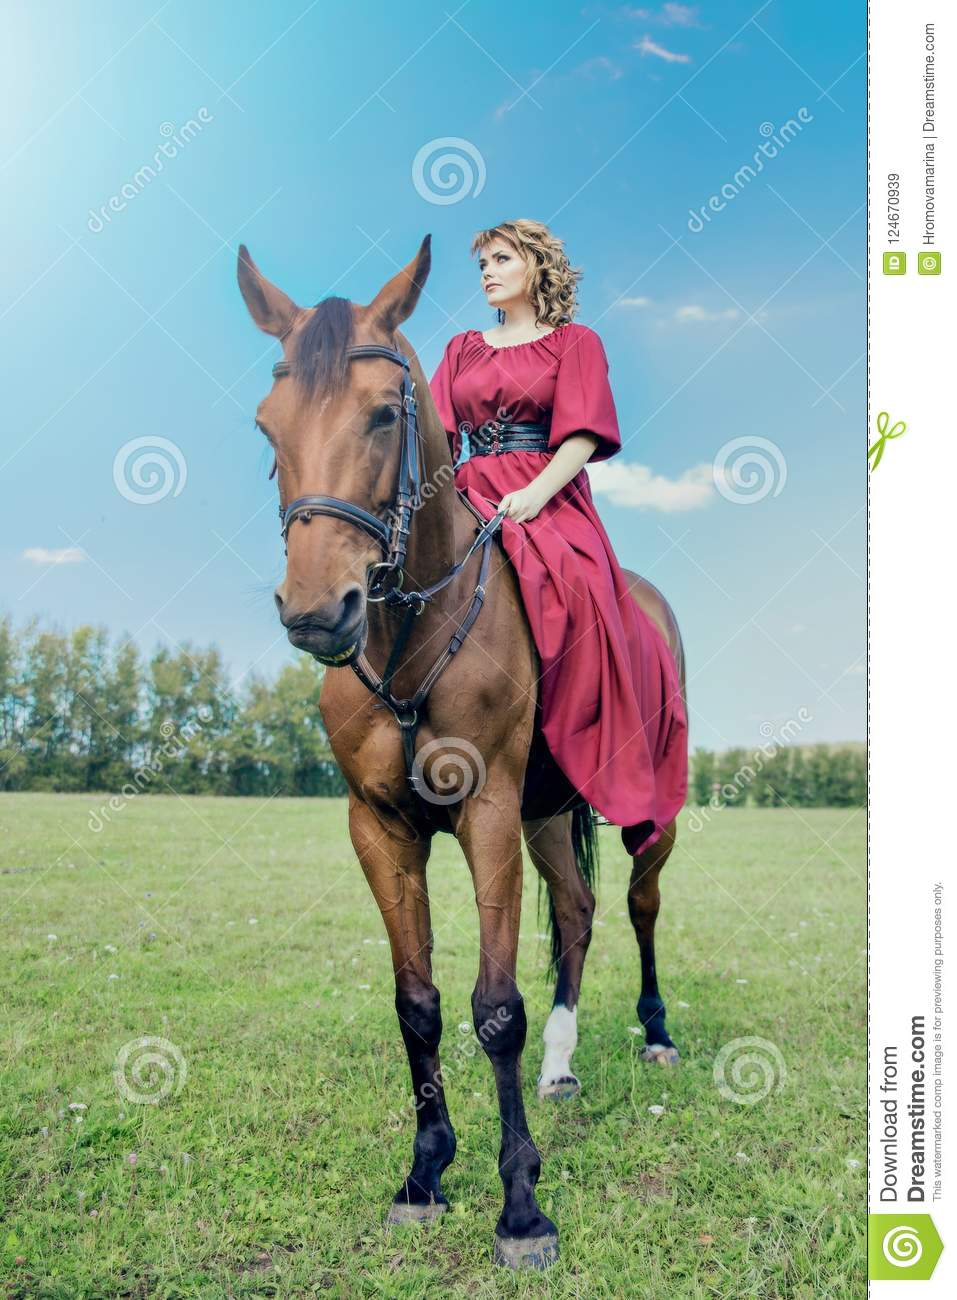 Beautiful girl in a long red dress riding a brown horse